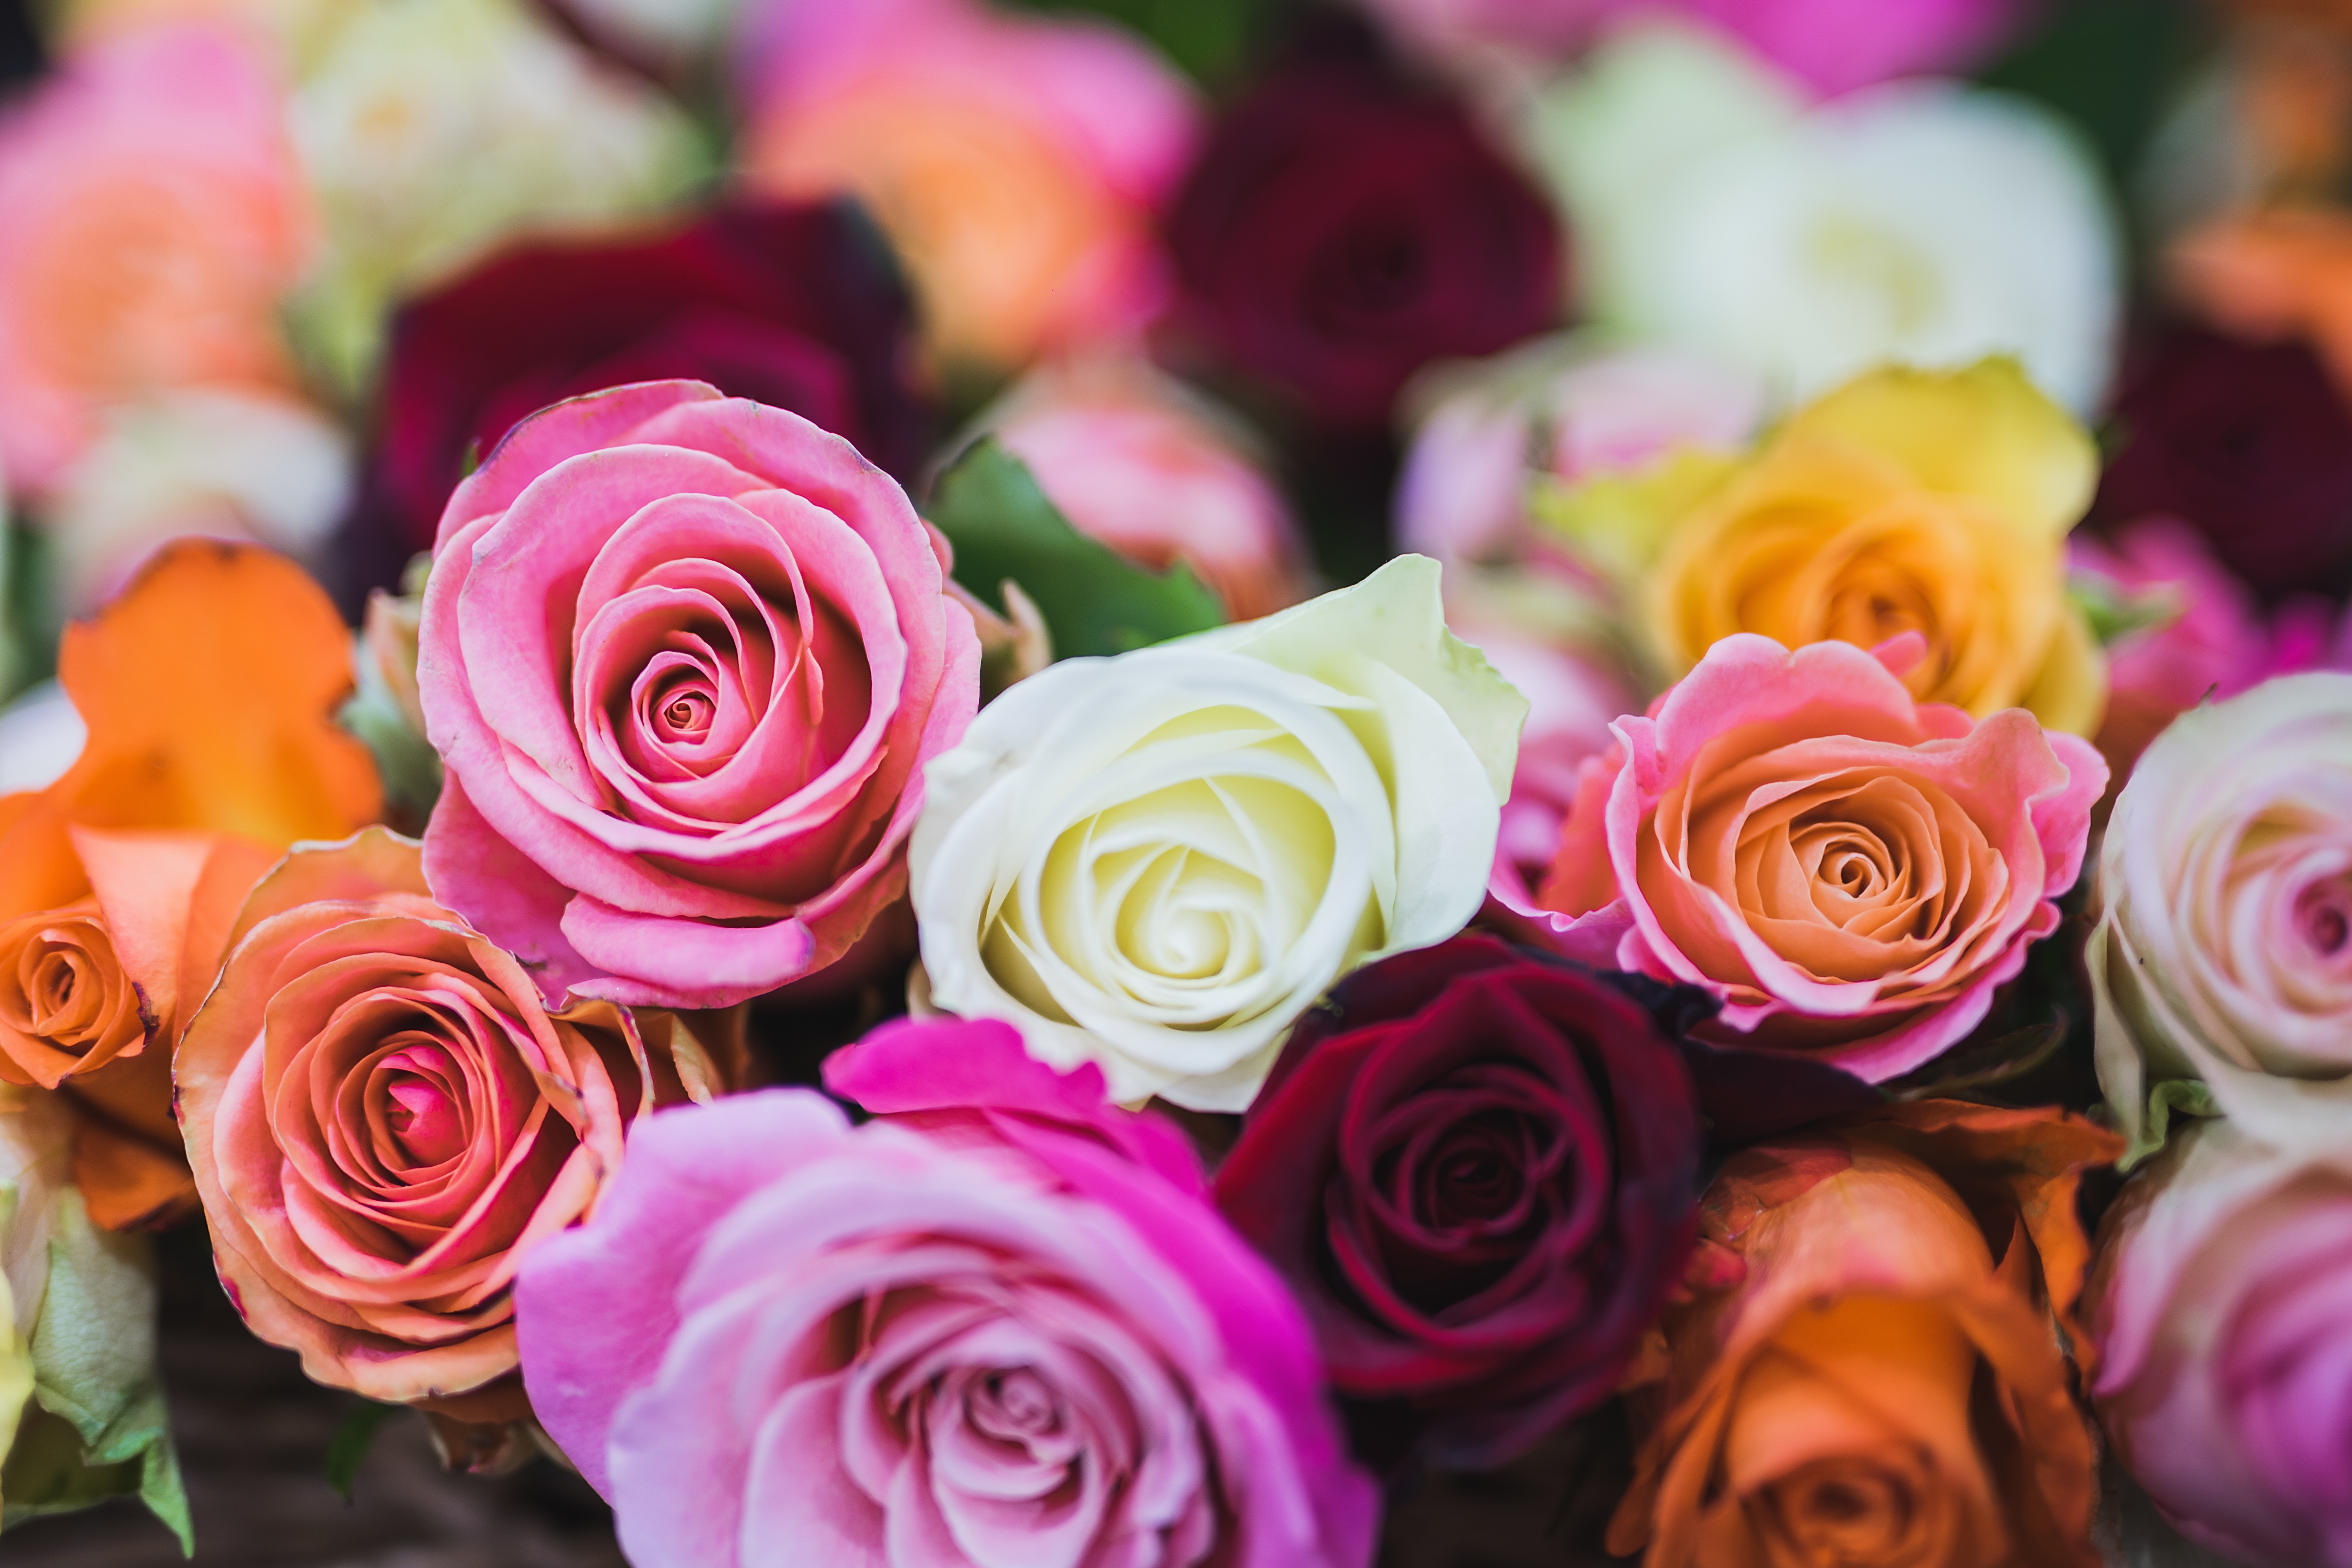 Make your own mixed rose bouquets